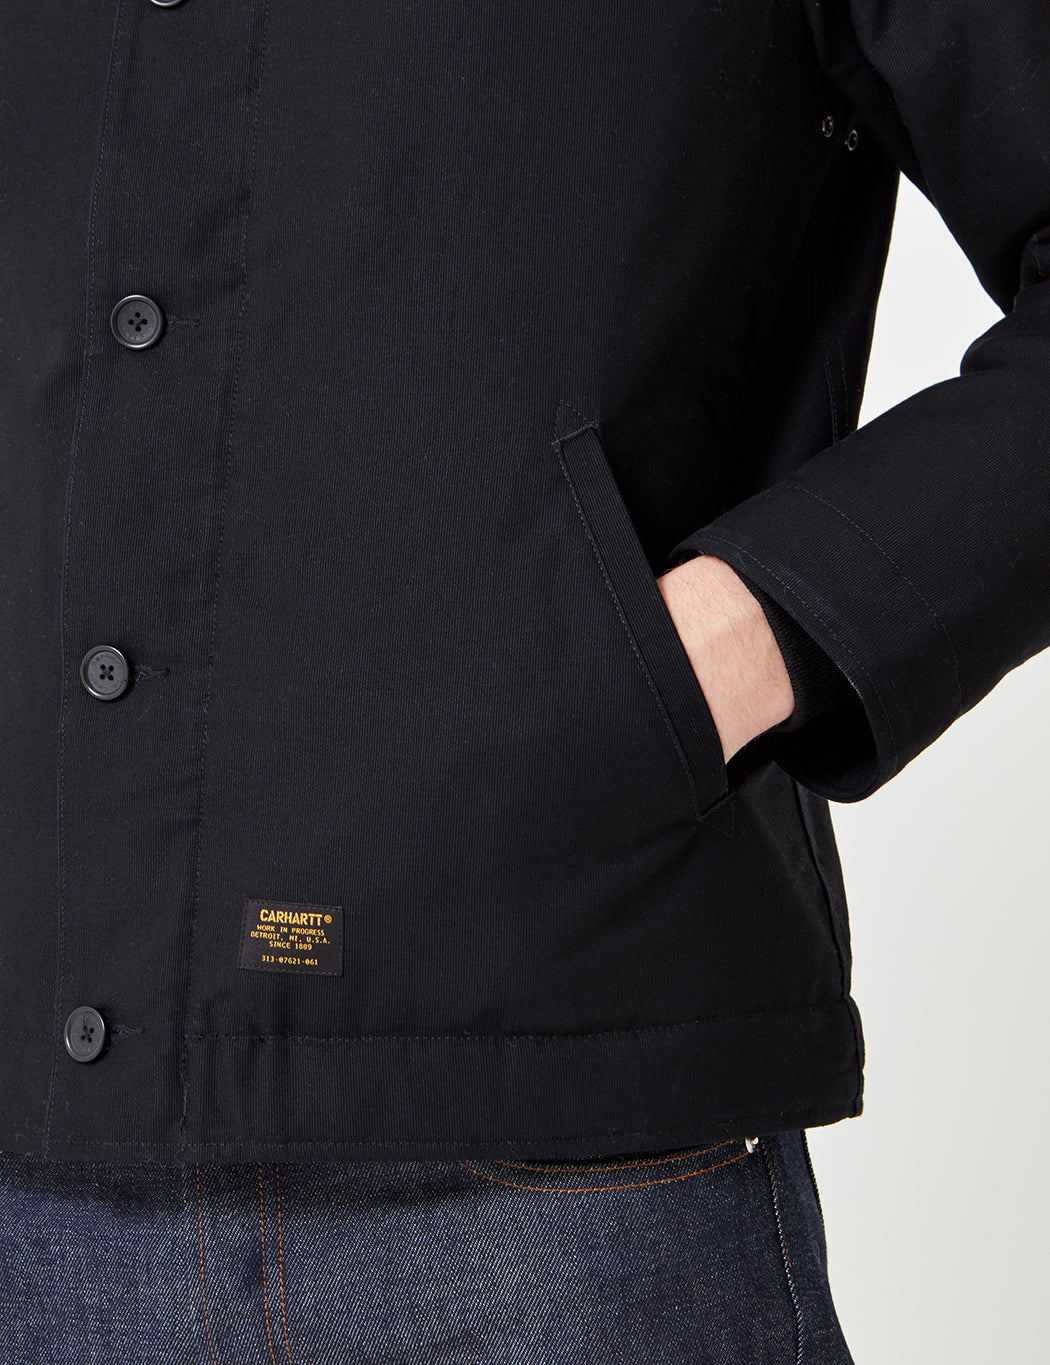 Carhartt Sheffield Jacket - Black